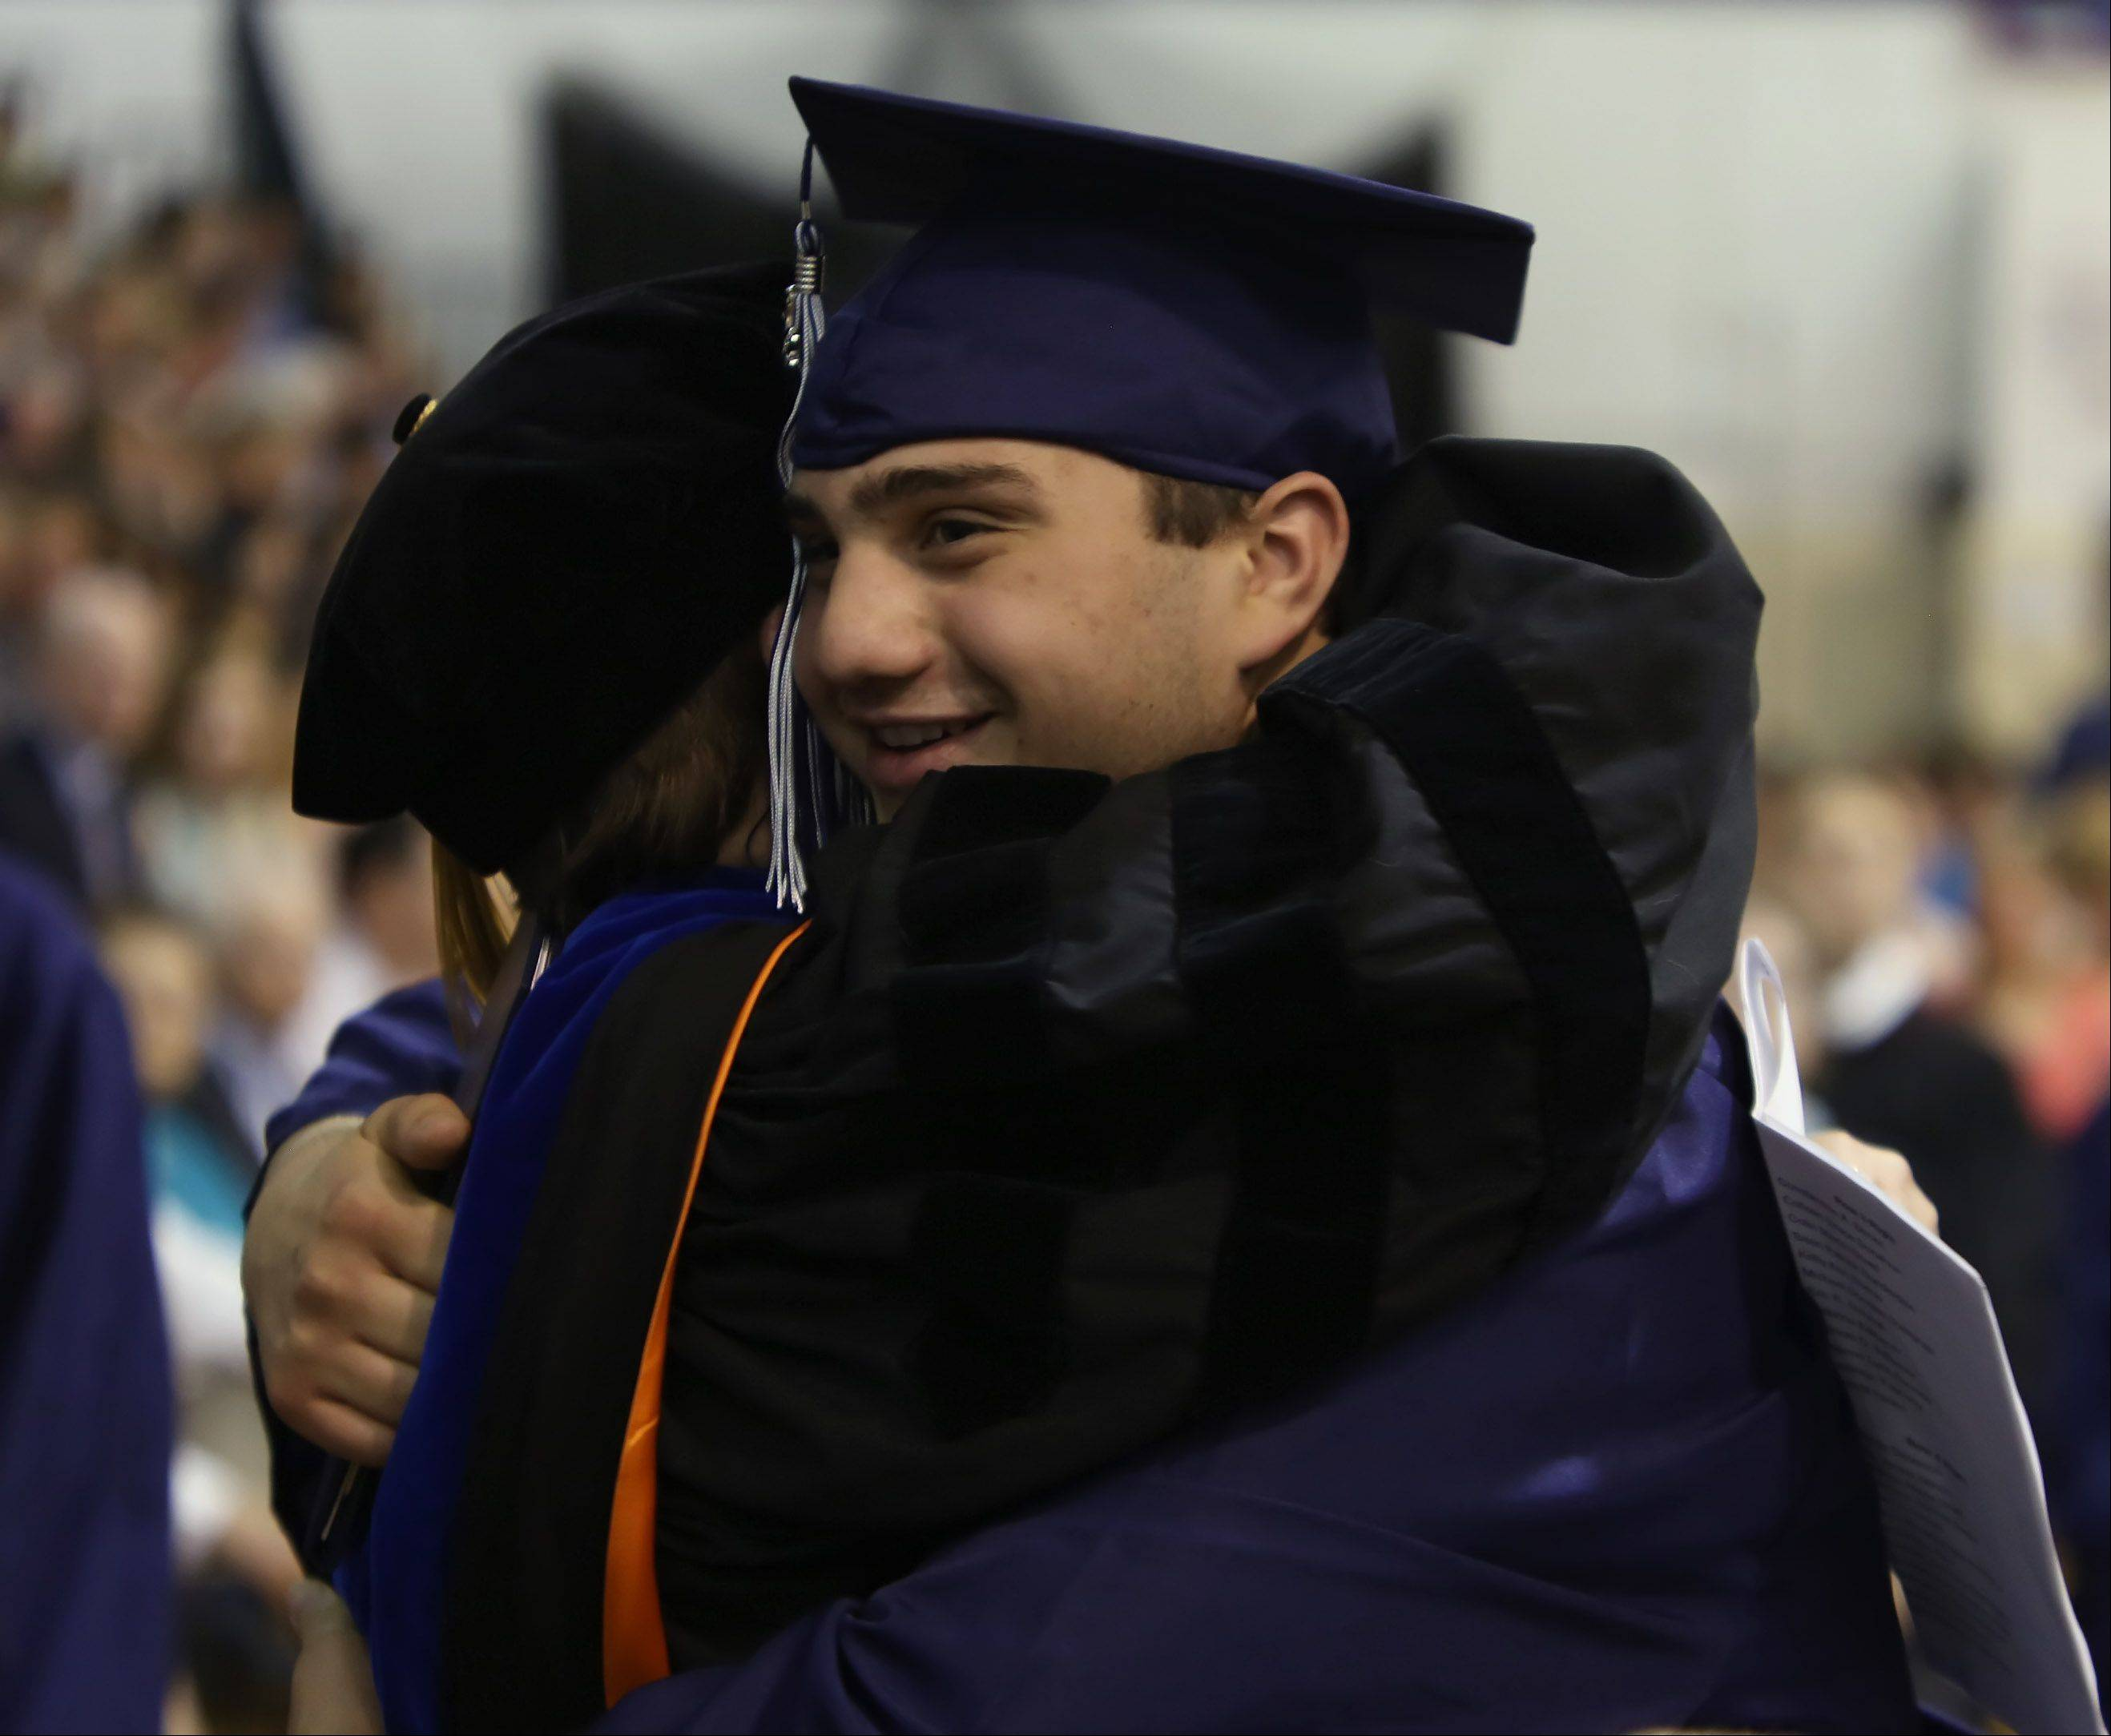 Dean Dimitri hugs Dr. Deb Scerbicke after receiving his diploma during the St. Viator graduation ceremony Sunday at the high school in Arlington Heights.